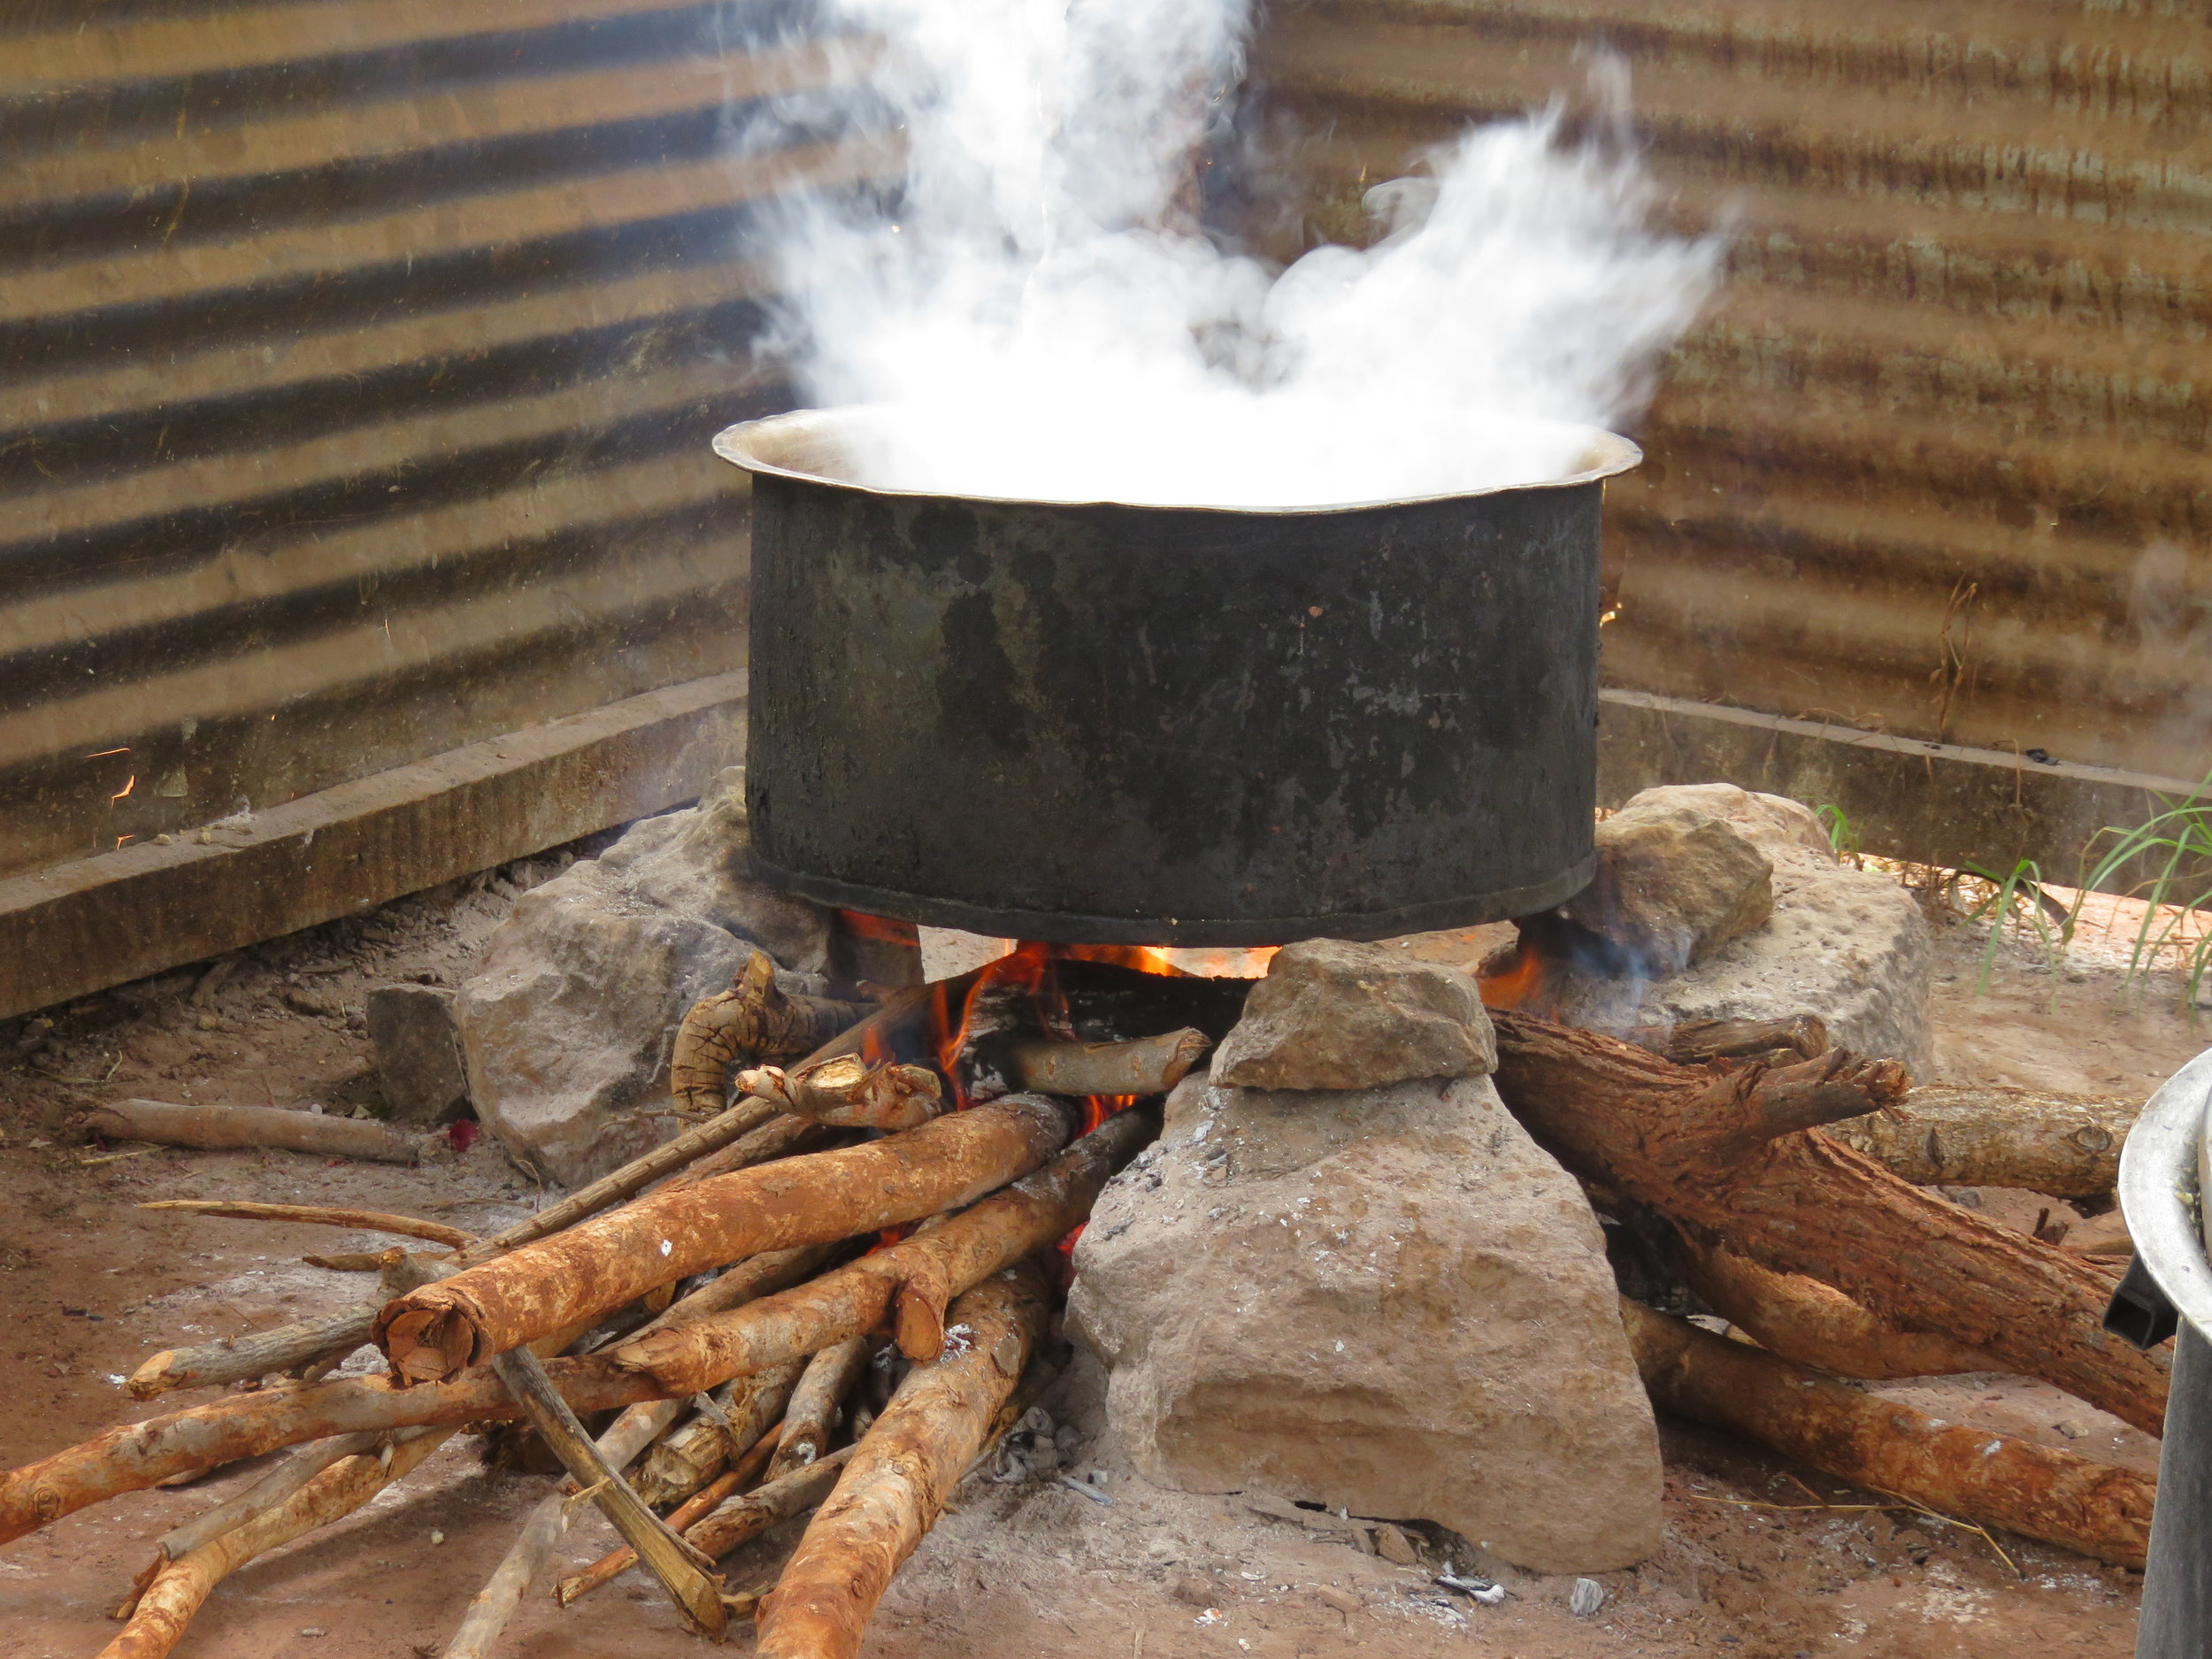 Traditional method of cooking is massively energy inefficient. Things need to change